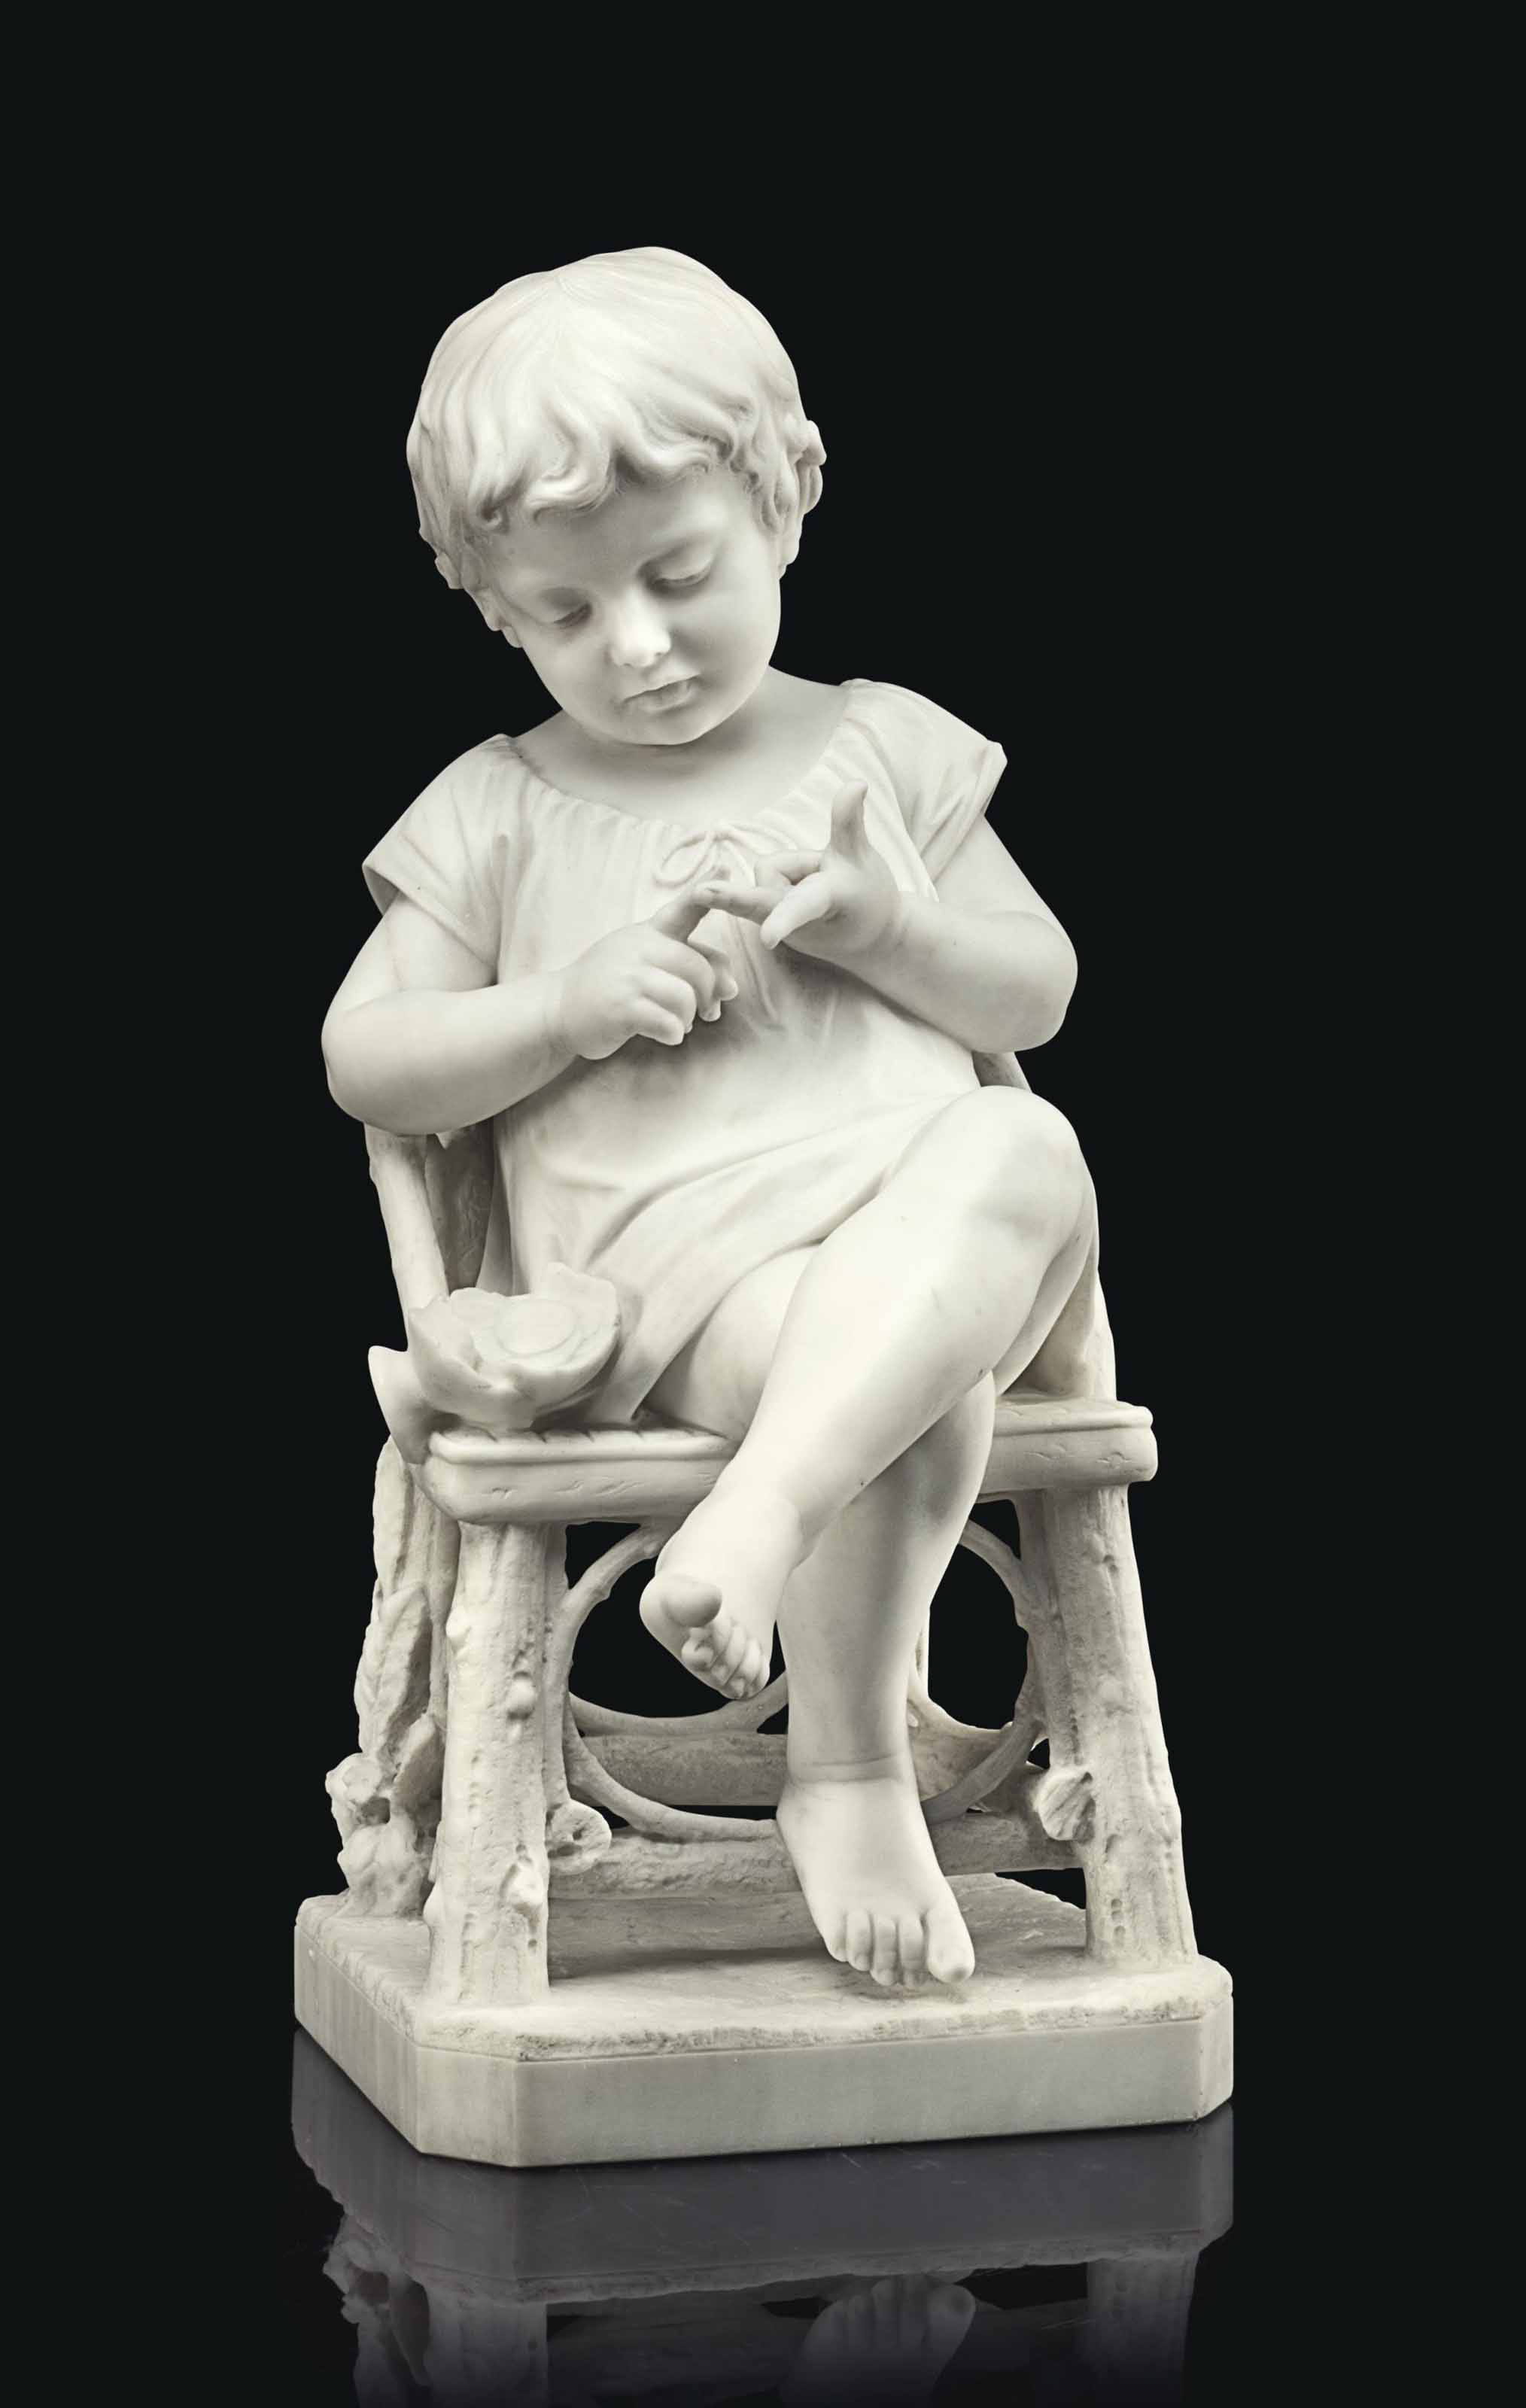 AN ITALIAN WHITE MARBLE FIGURE OF A CHILD COUNTING COINS